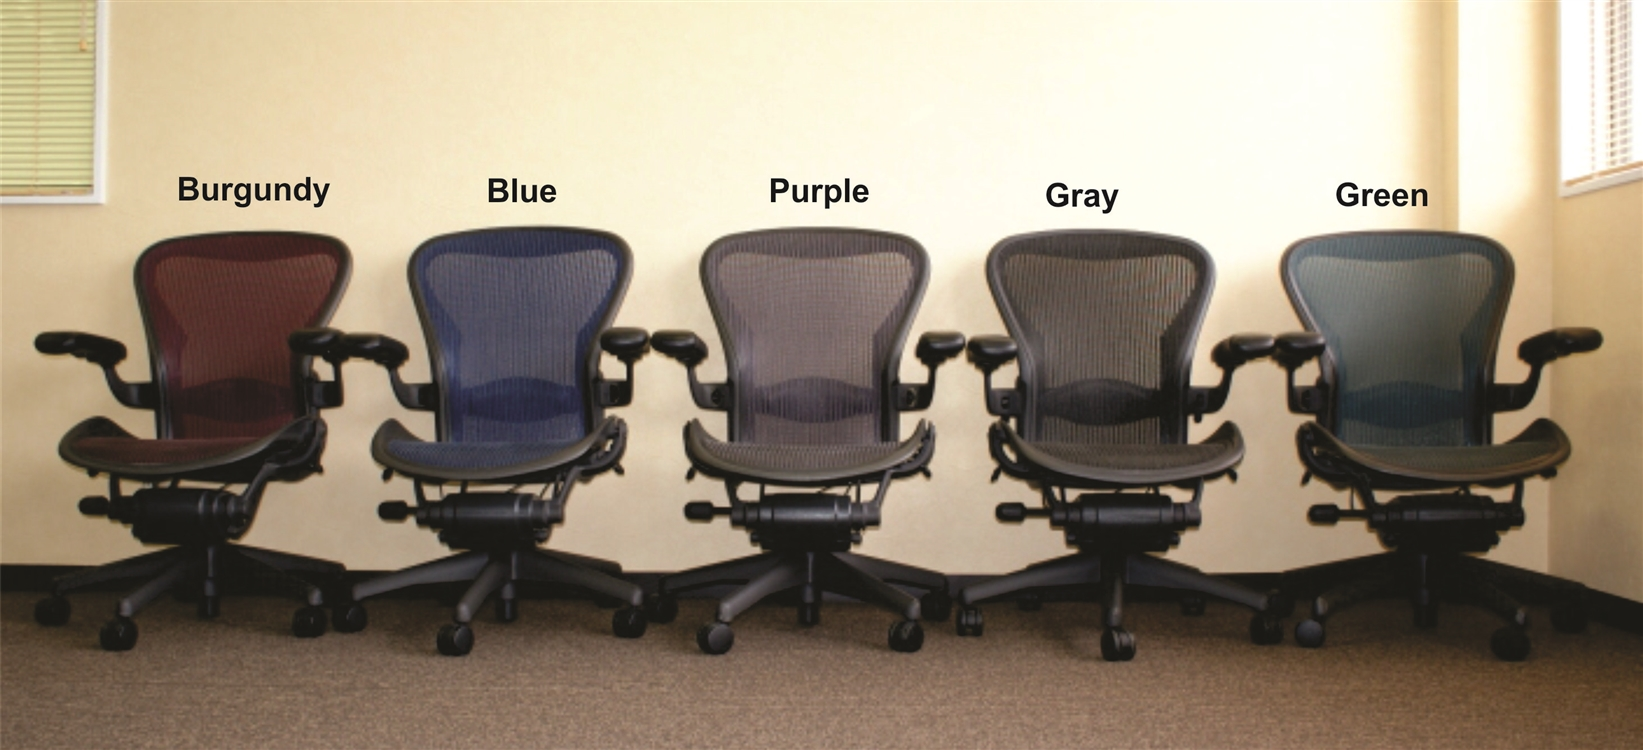 Herman Miller Office Chair Herman Miller Aeron Chair Size B Loaded With Options In Purple